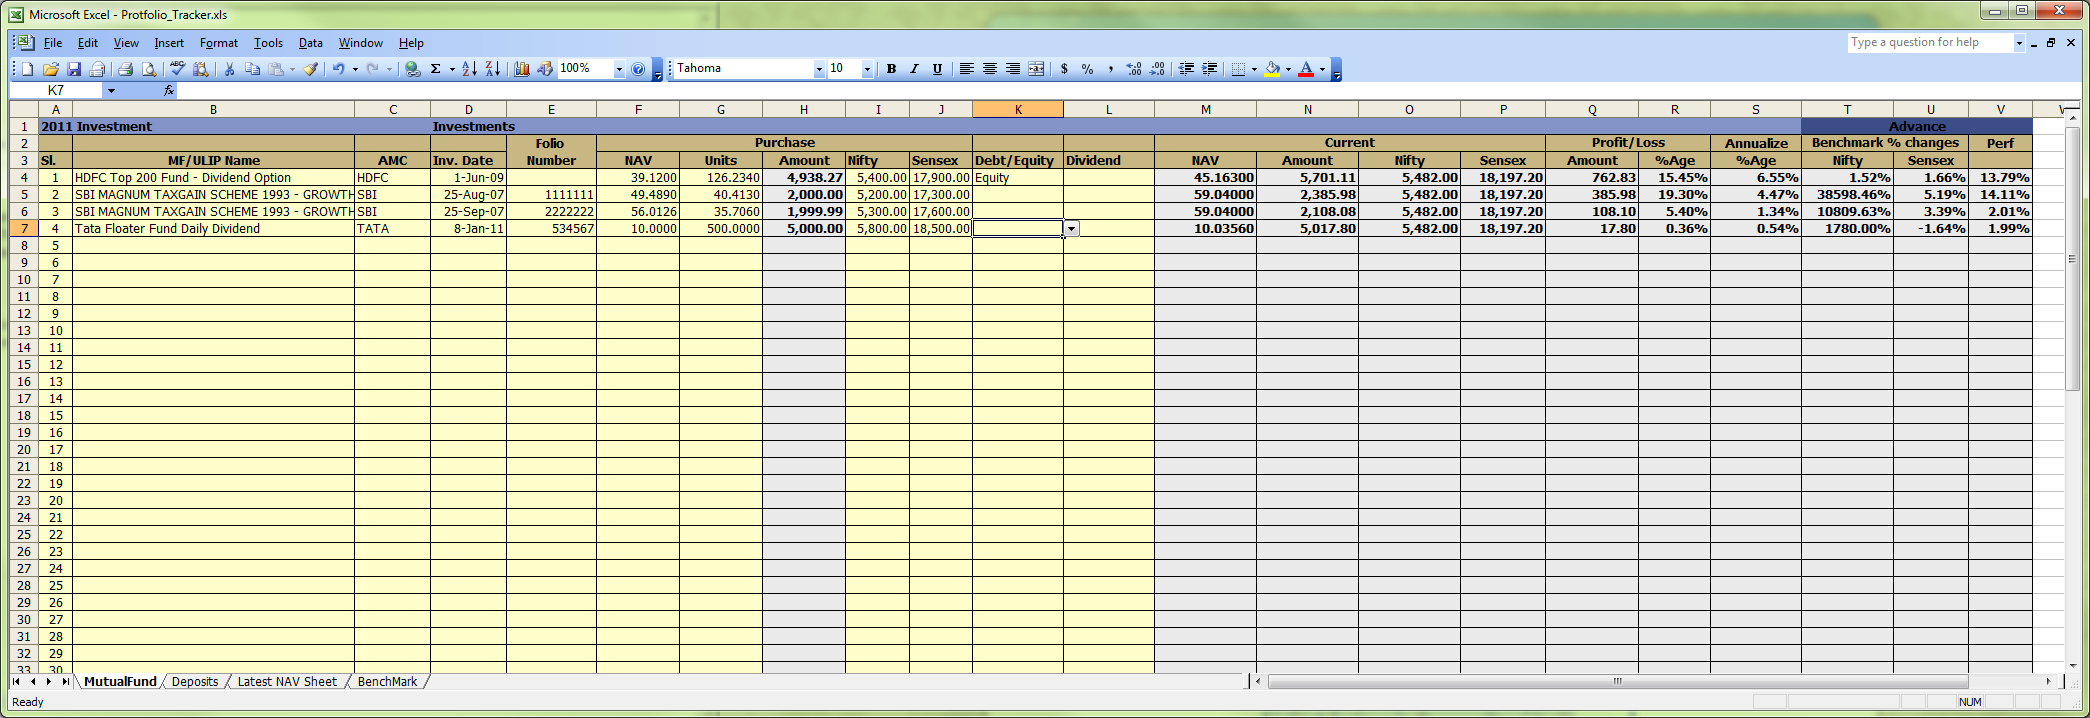 Dividend Spreadsheet Templates Within Portfolio Tracking Spreadsheet Dividend Stock Tracker With Dividend Spreadsheet Templates Printable Spreadshee Printable Spreadshee dividend spreadsheet templates